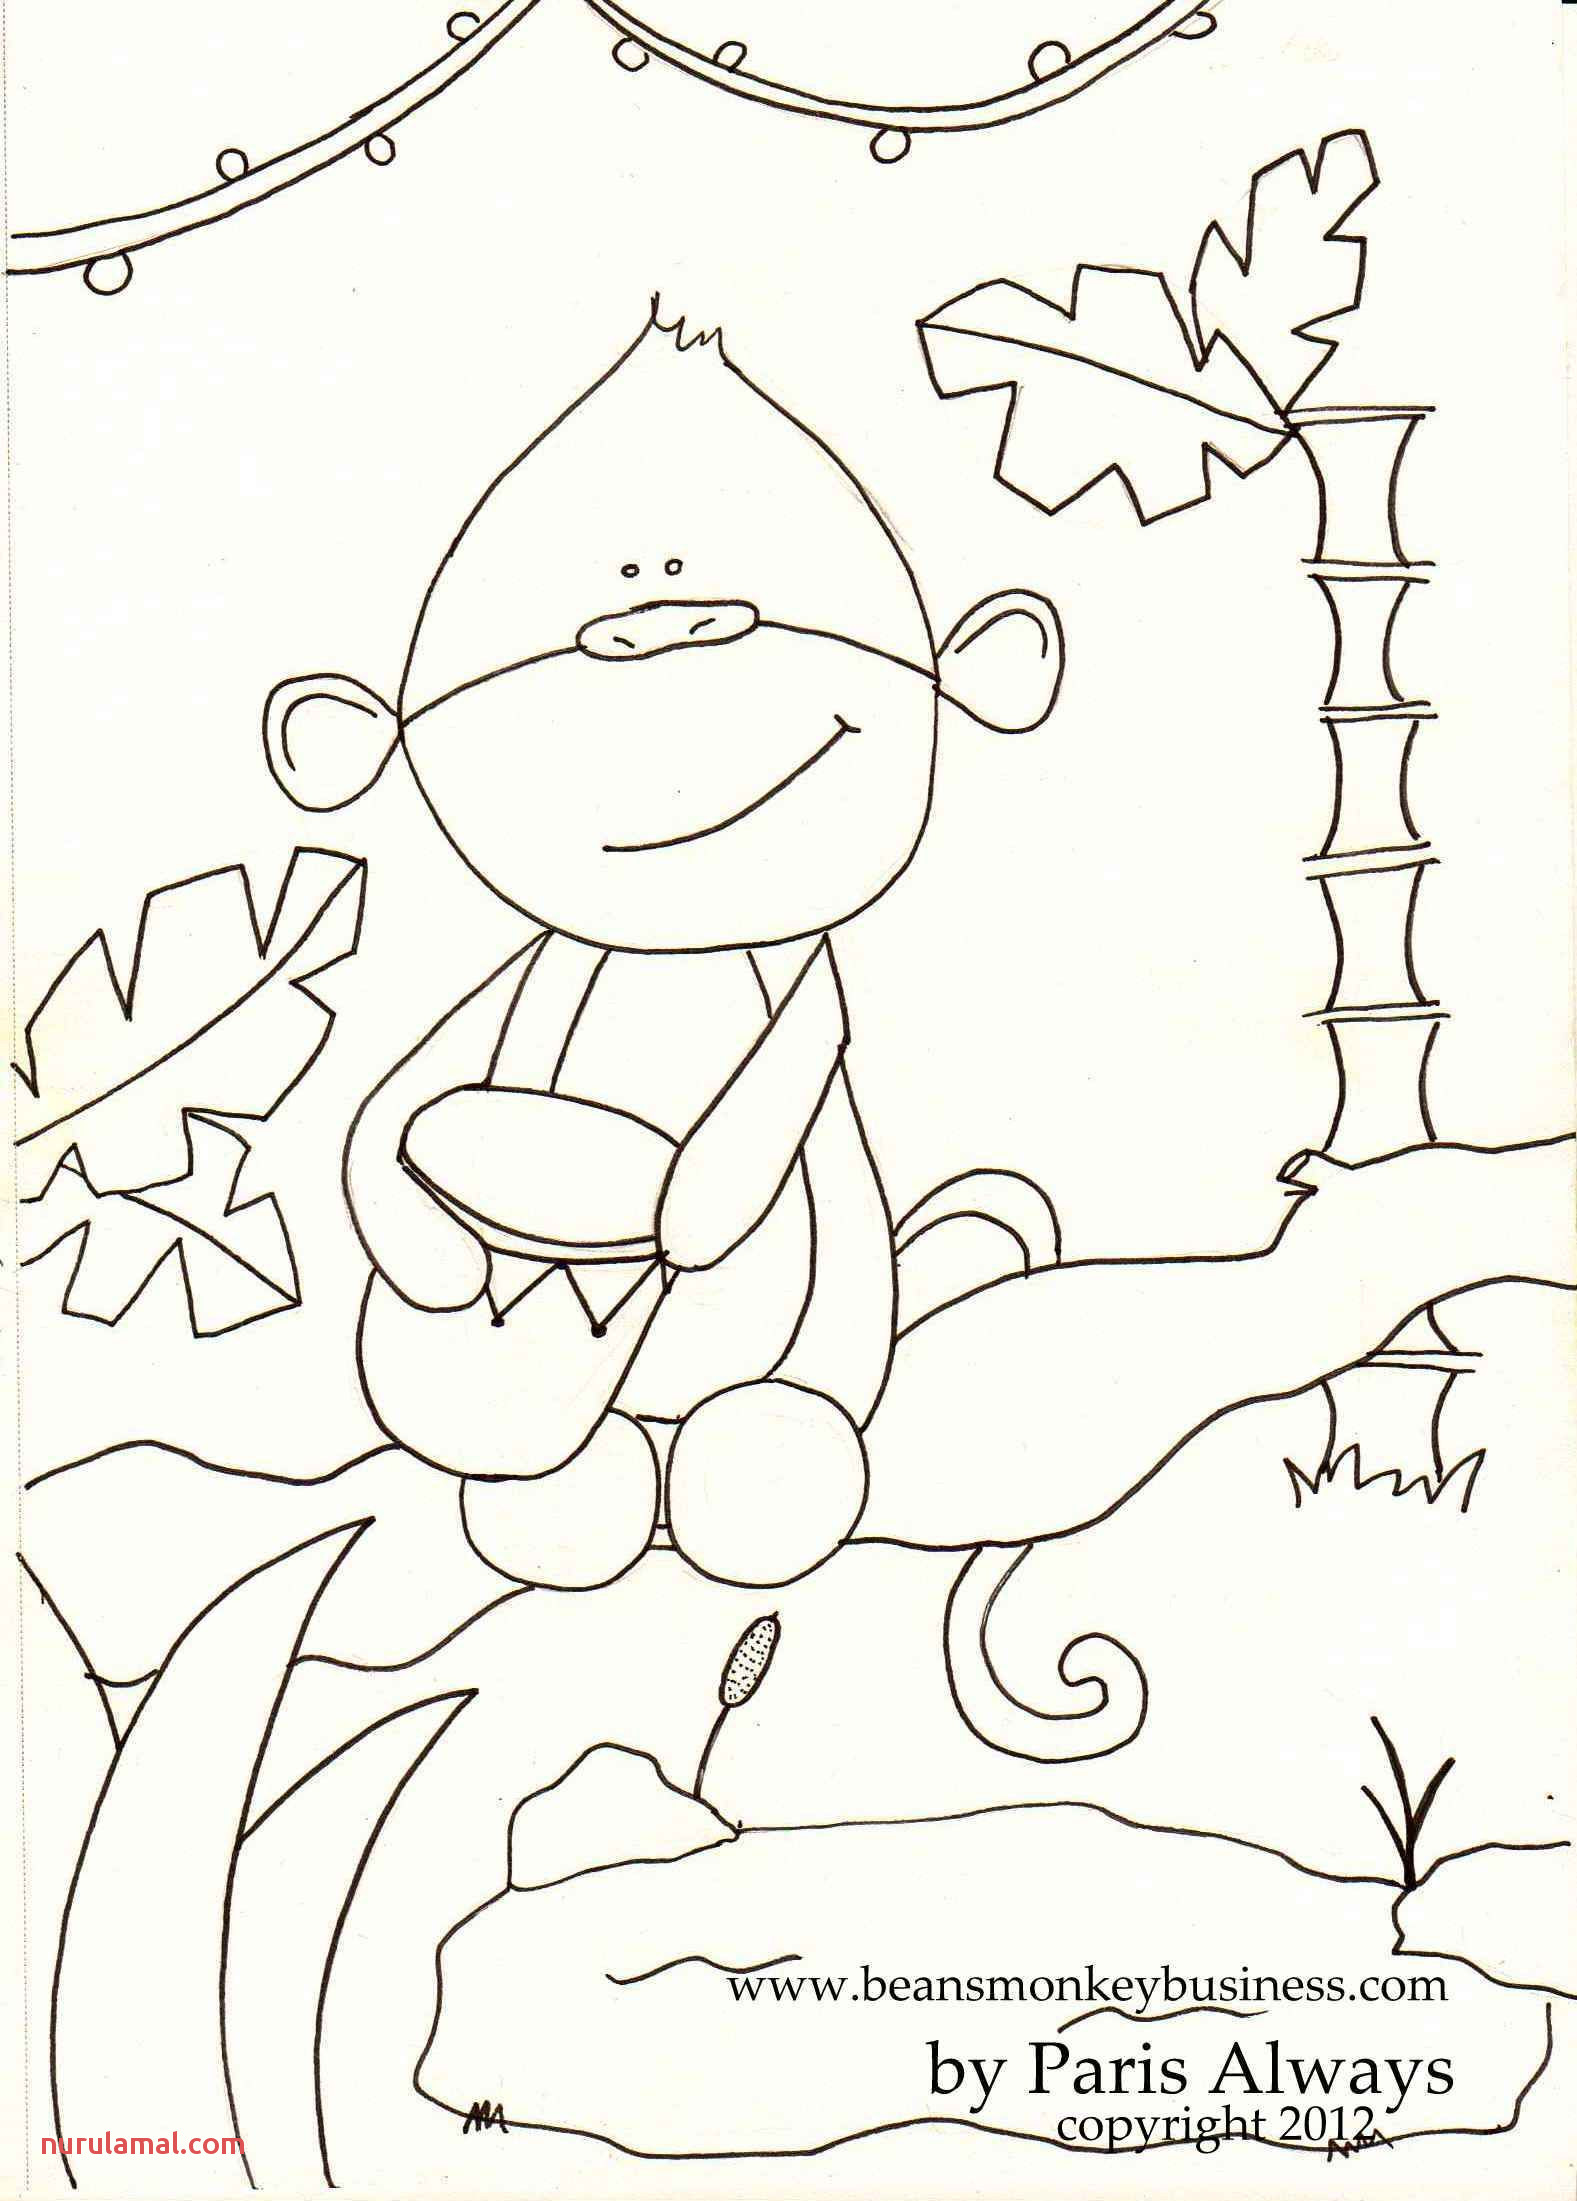 Paris Did A Coloring Page for Bean and Kids to Color and Use